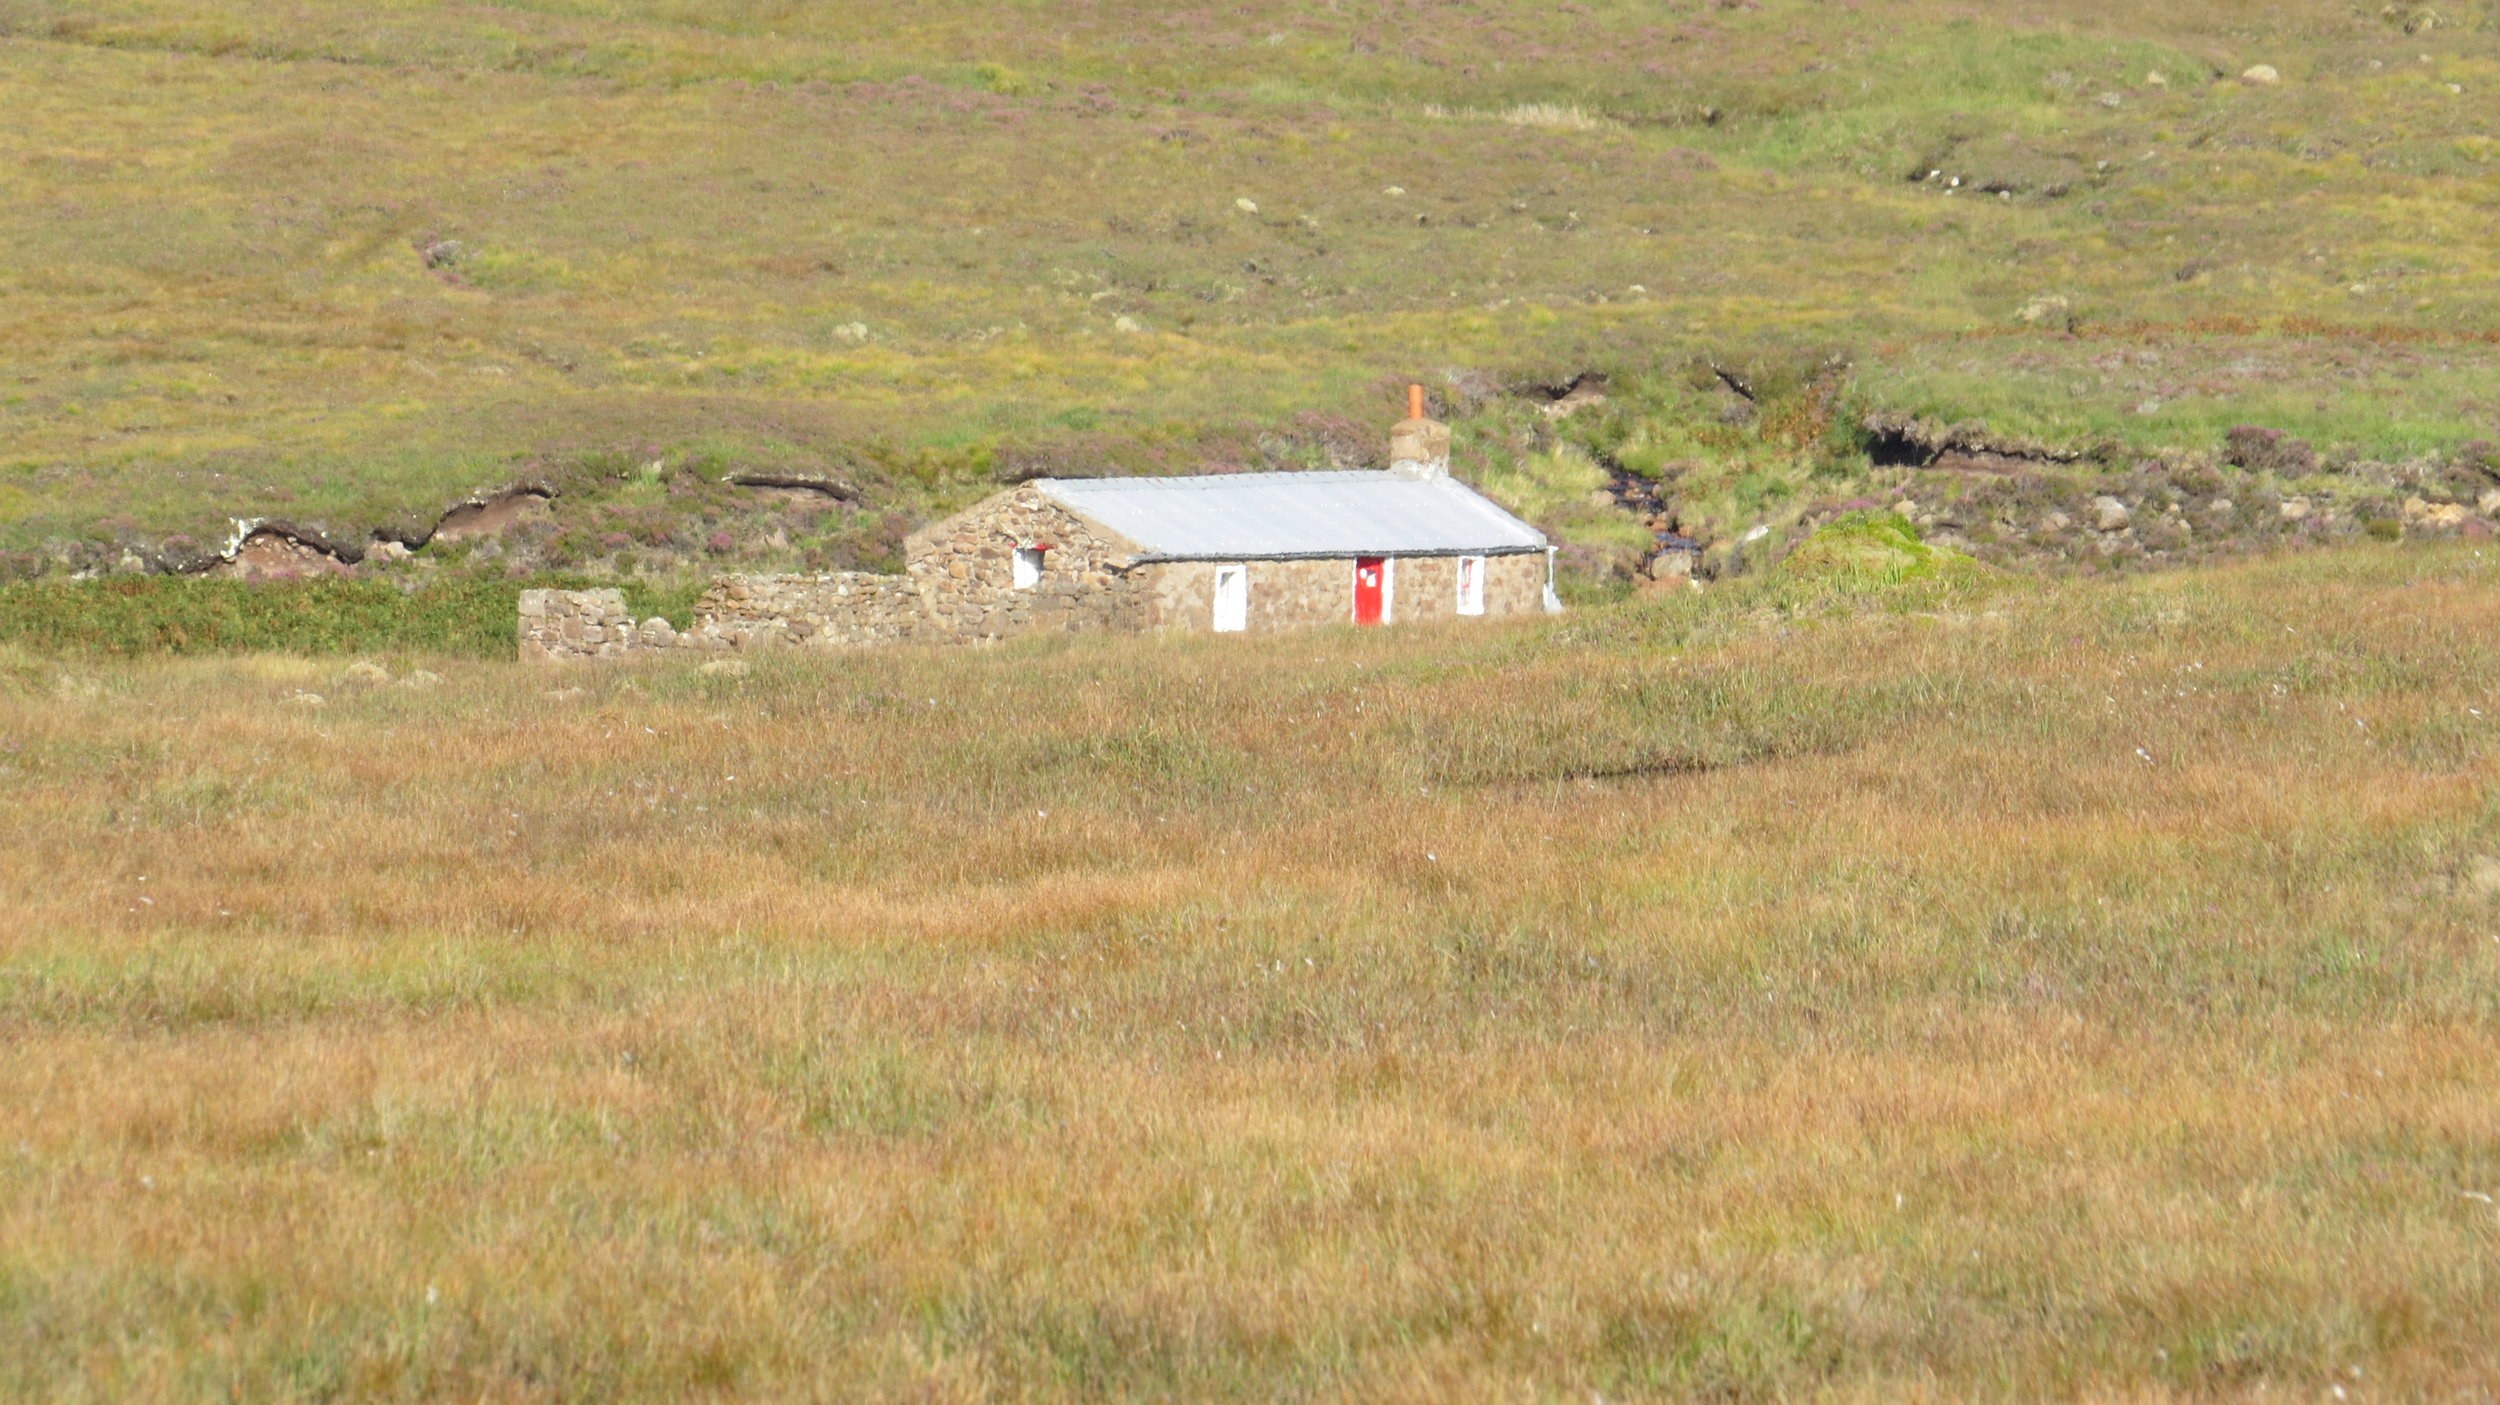 Approaching Strathchailleach Bothy